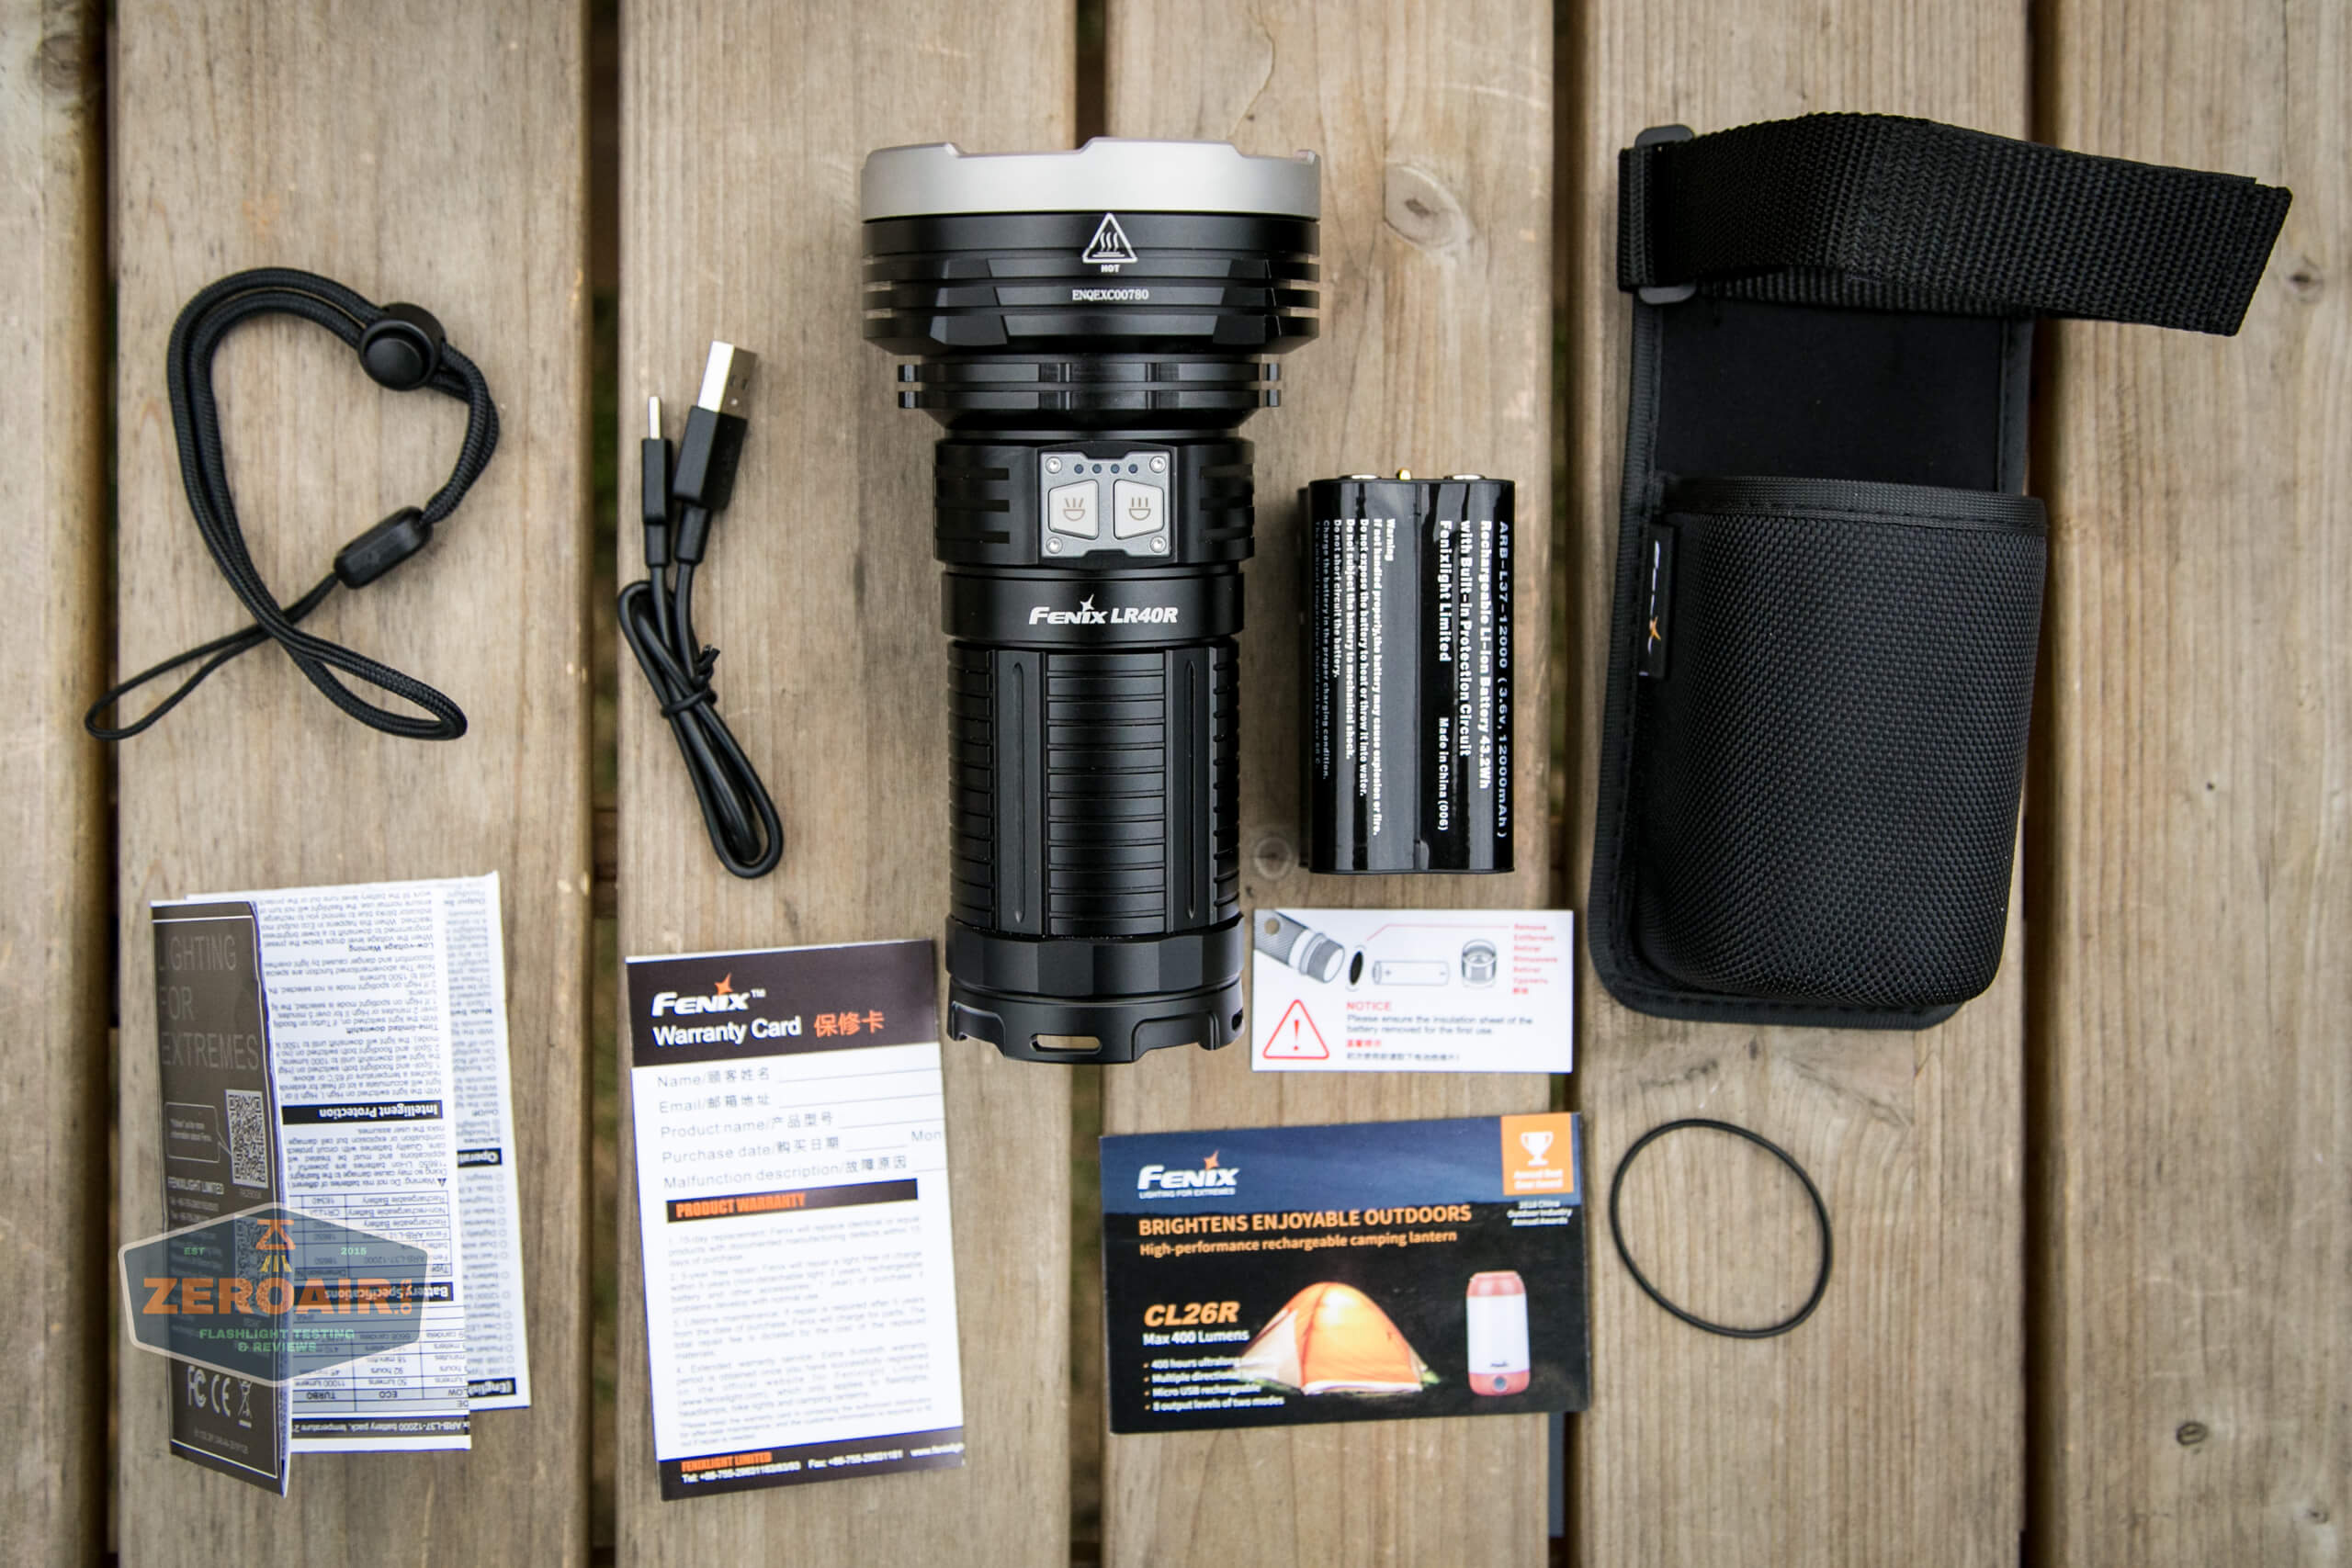 fenix lr40r what's included